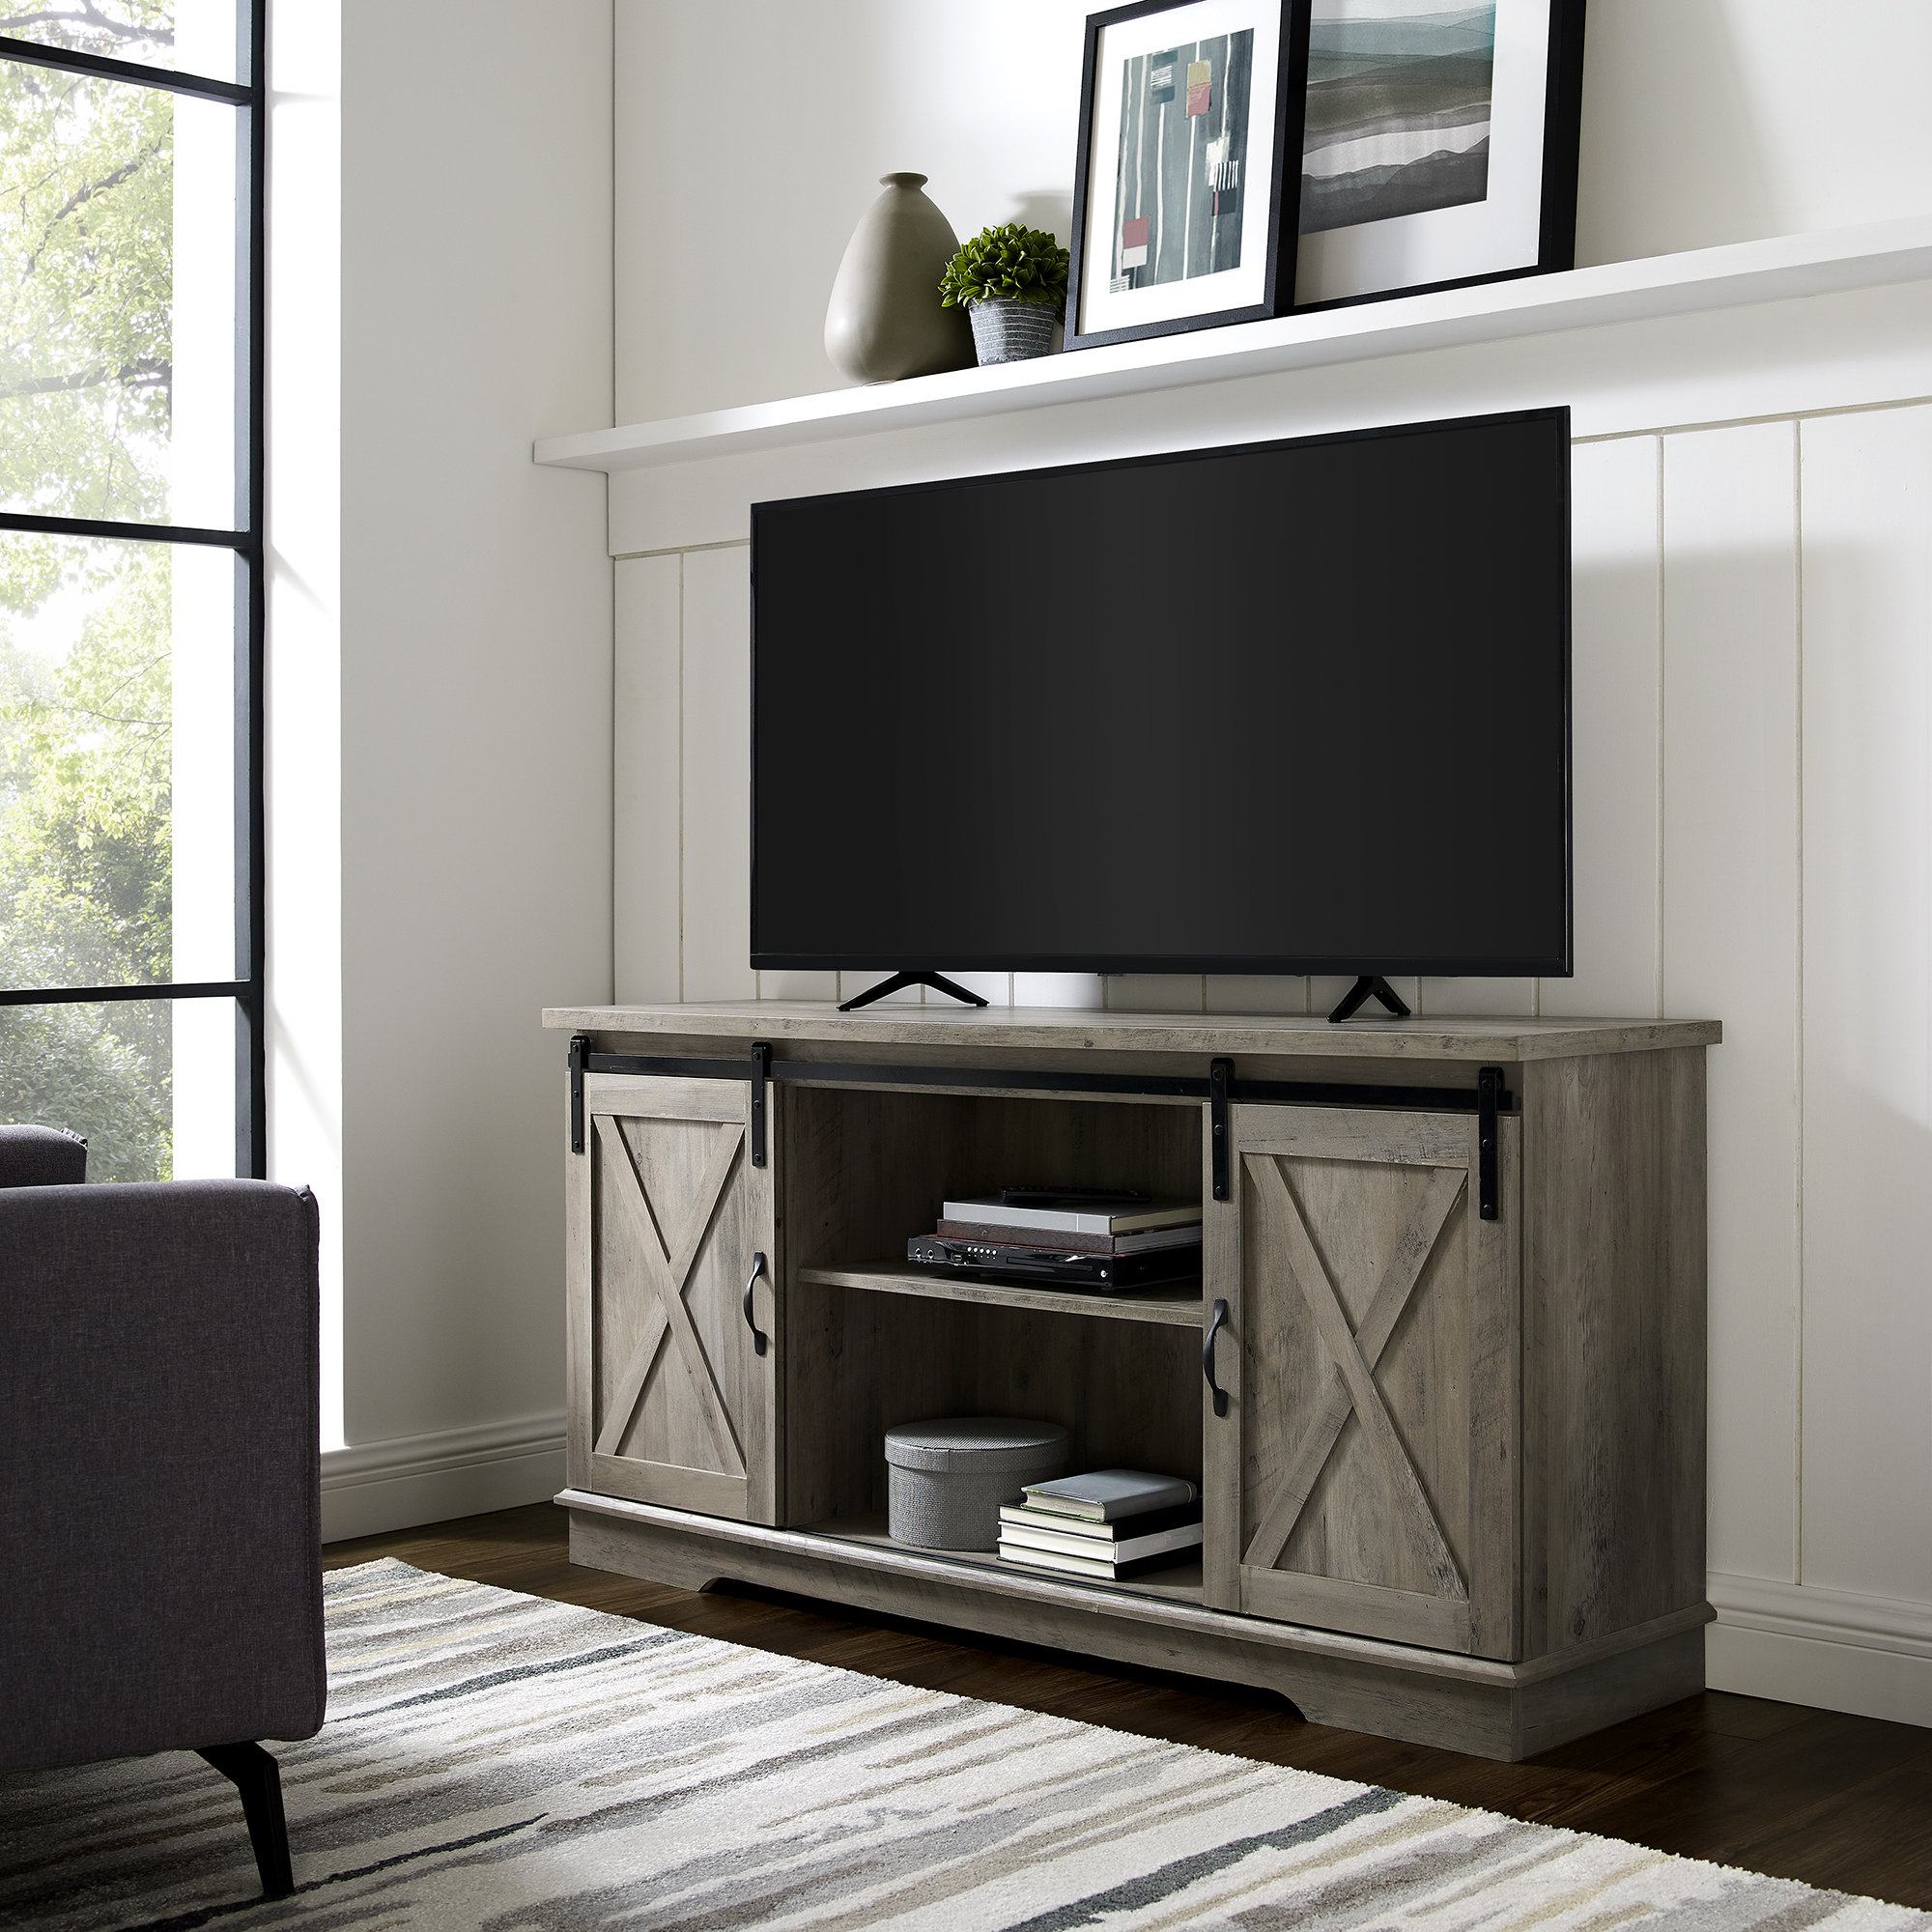 Sinclair White 74 Inch Tv Stands For Well Known Tv Stands & Entertainment Centers You'll Love (View 14 of 20)